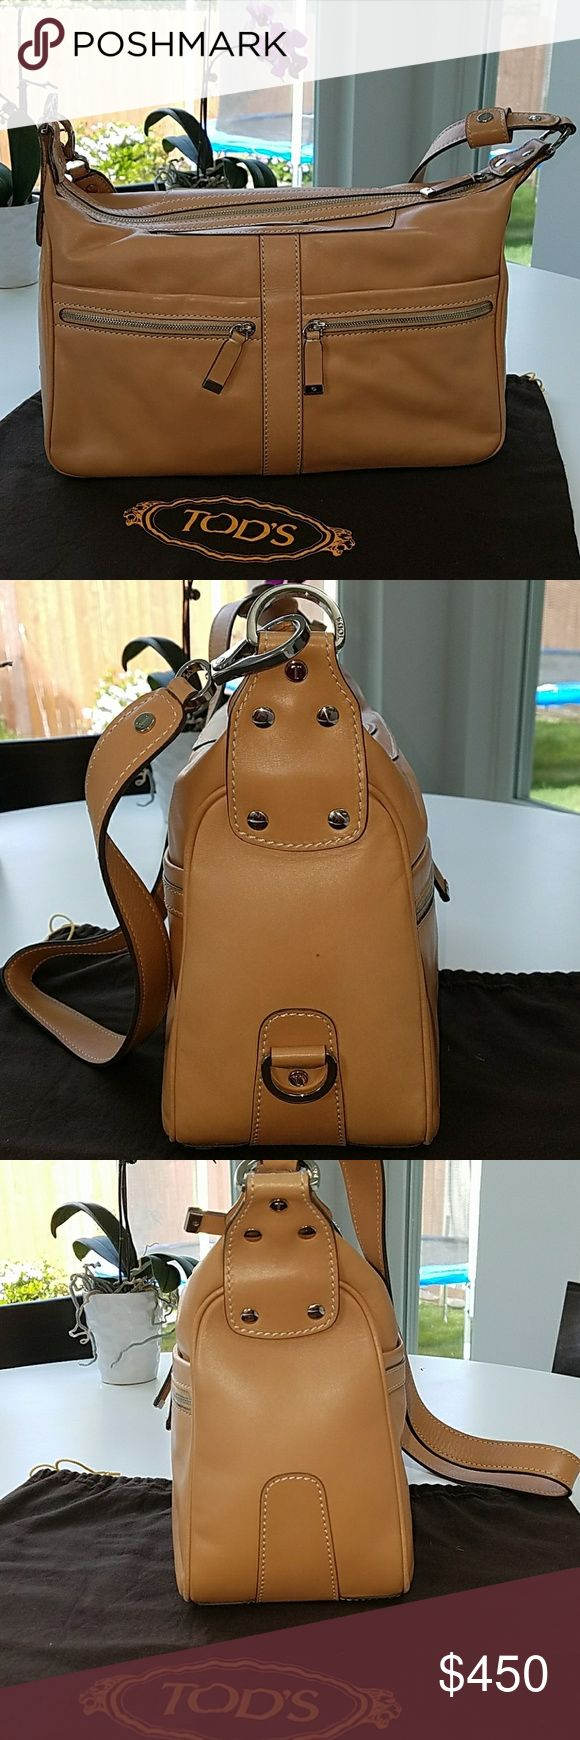 """TOD'S Leather Purse Stunning in MINT shape! Natural color leather Tod's bag. Perfect summer color! Used twice!!!  4 outside Pockets 2 with zippers and 2 on the backside are open pockets. Strap can be worn short/long. Bag has a 21"""" drop when strap is at full extension, & apx. a 10"""" drop when it's at the short hang. Can be worn as a shoulder bag/cross body. Bag has one inside zipper compartment. All zippers have leather pulls.  Bag measures 13"""" long,   approximately 9 1/2"""" High & just over 5""""…"""